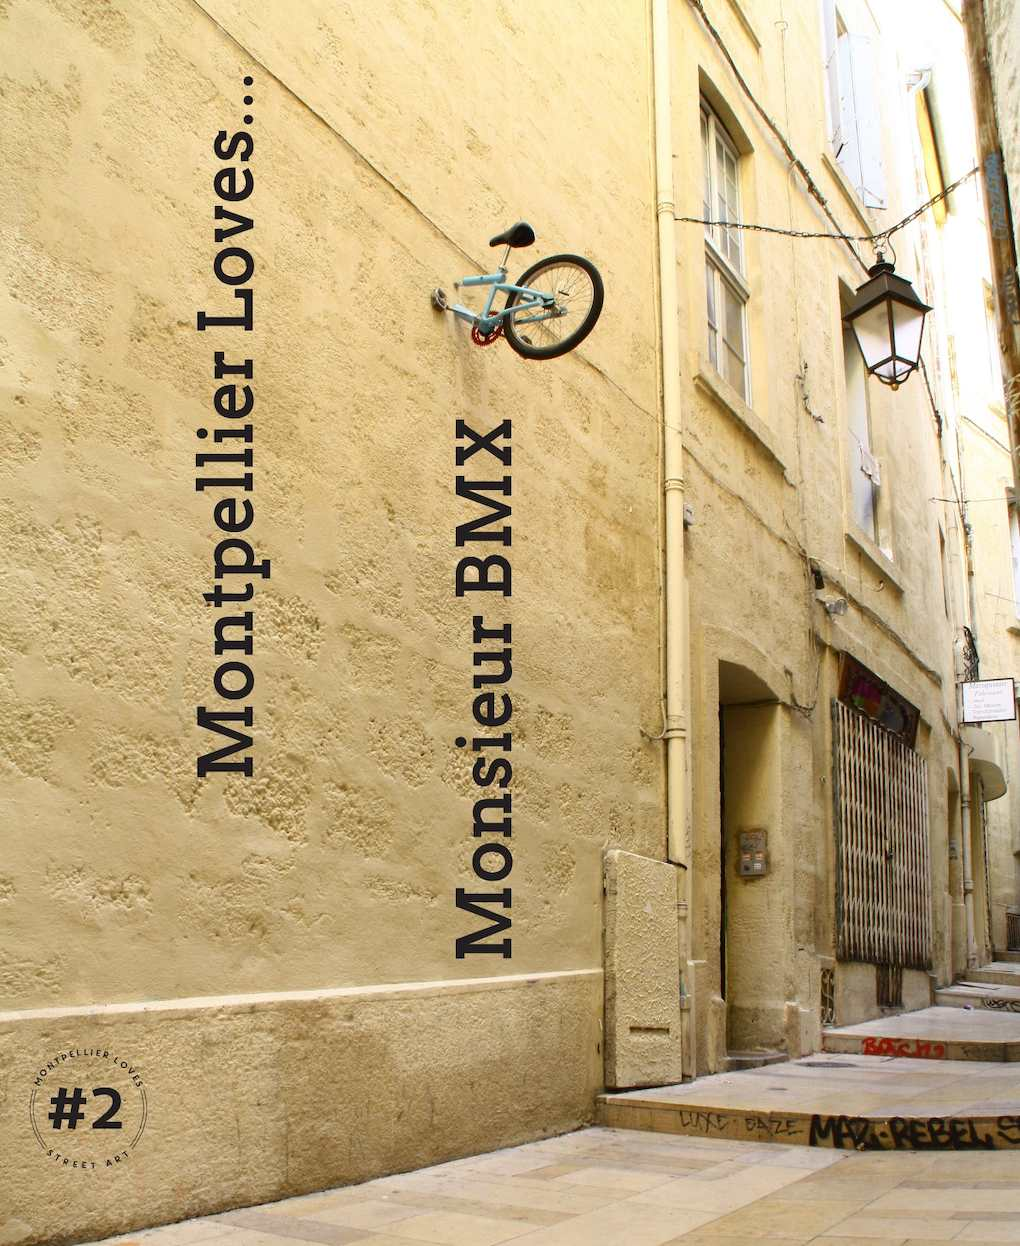 Calaméo - Best of Monsieur Bmx - Street Art #2 Rencontre & Regards ...